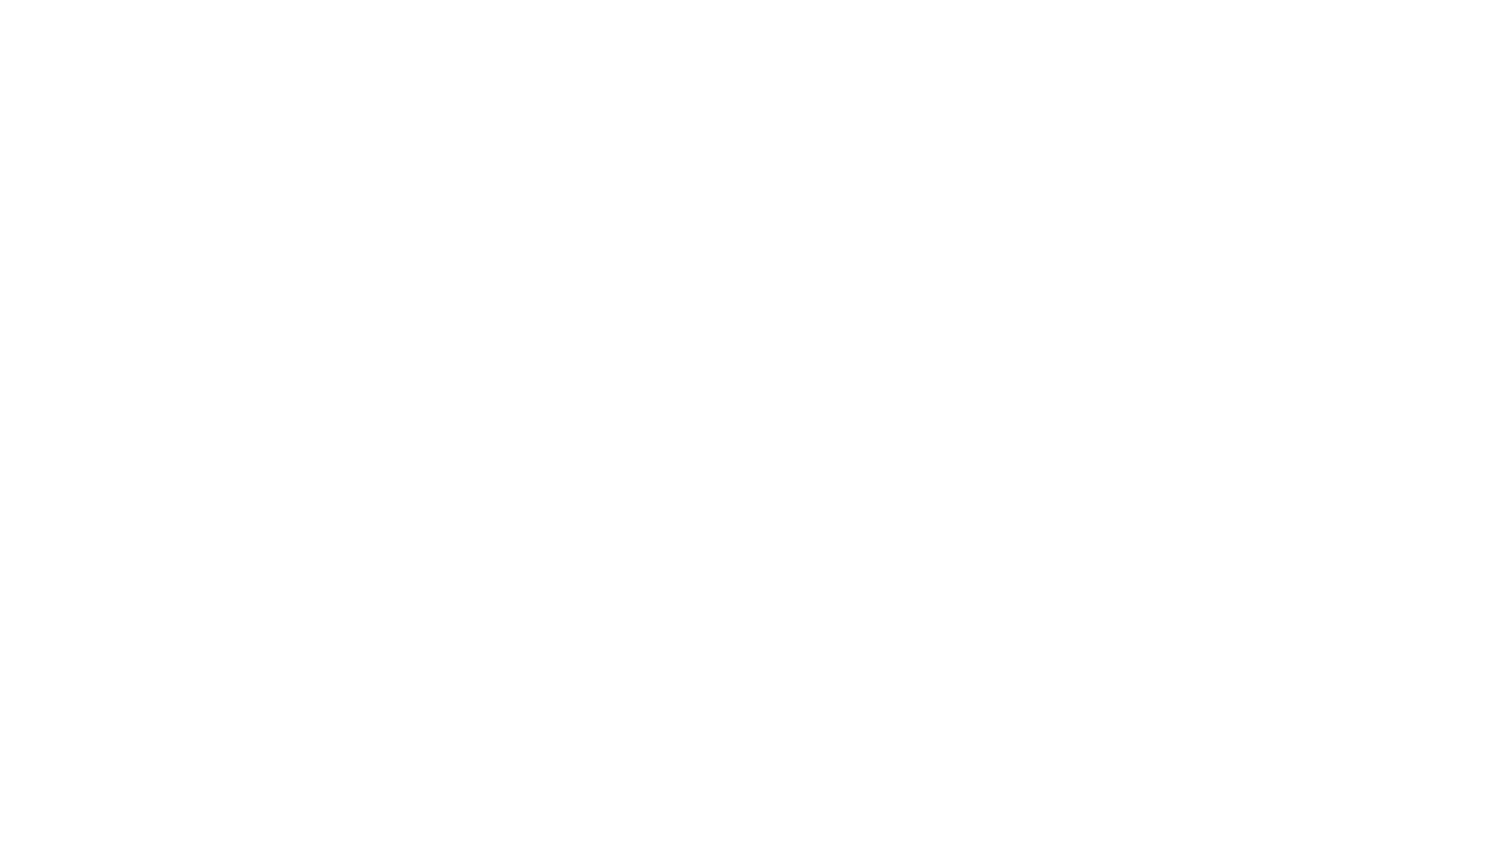 regenerativeresorts